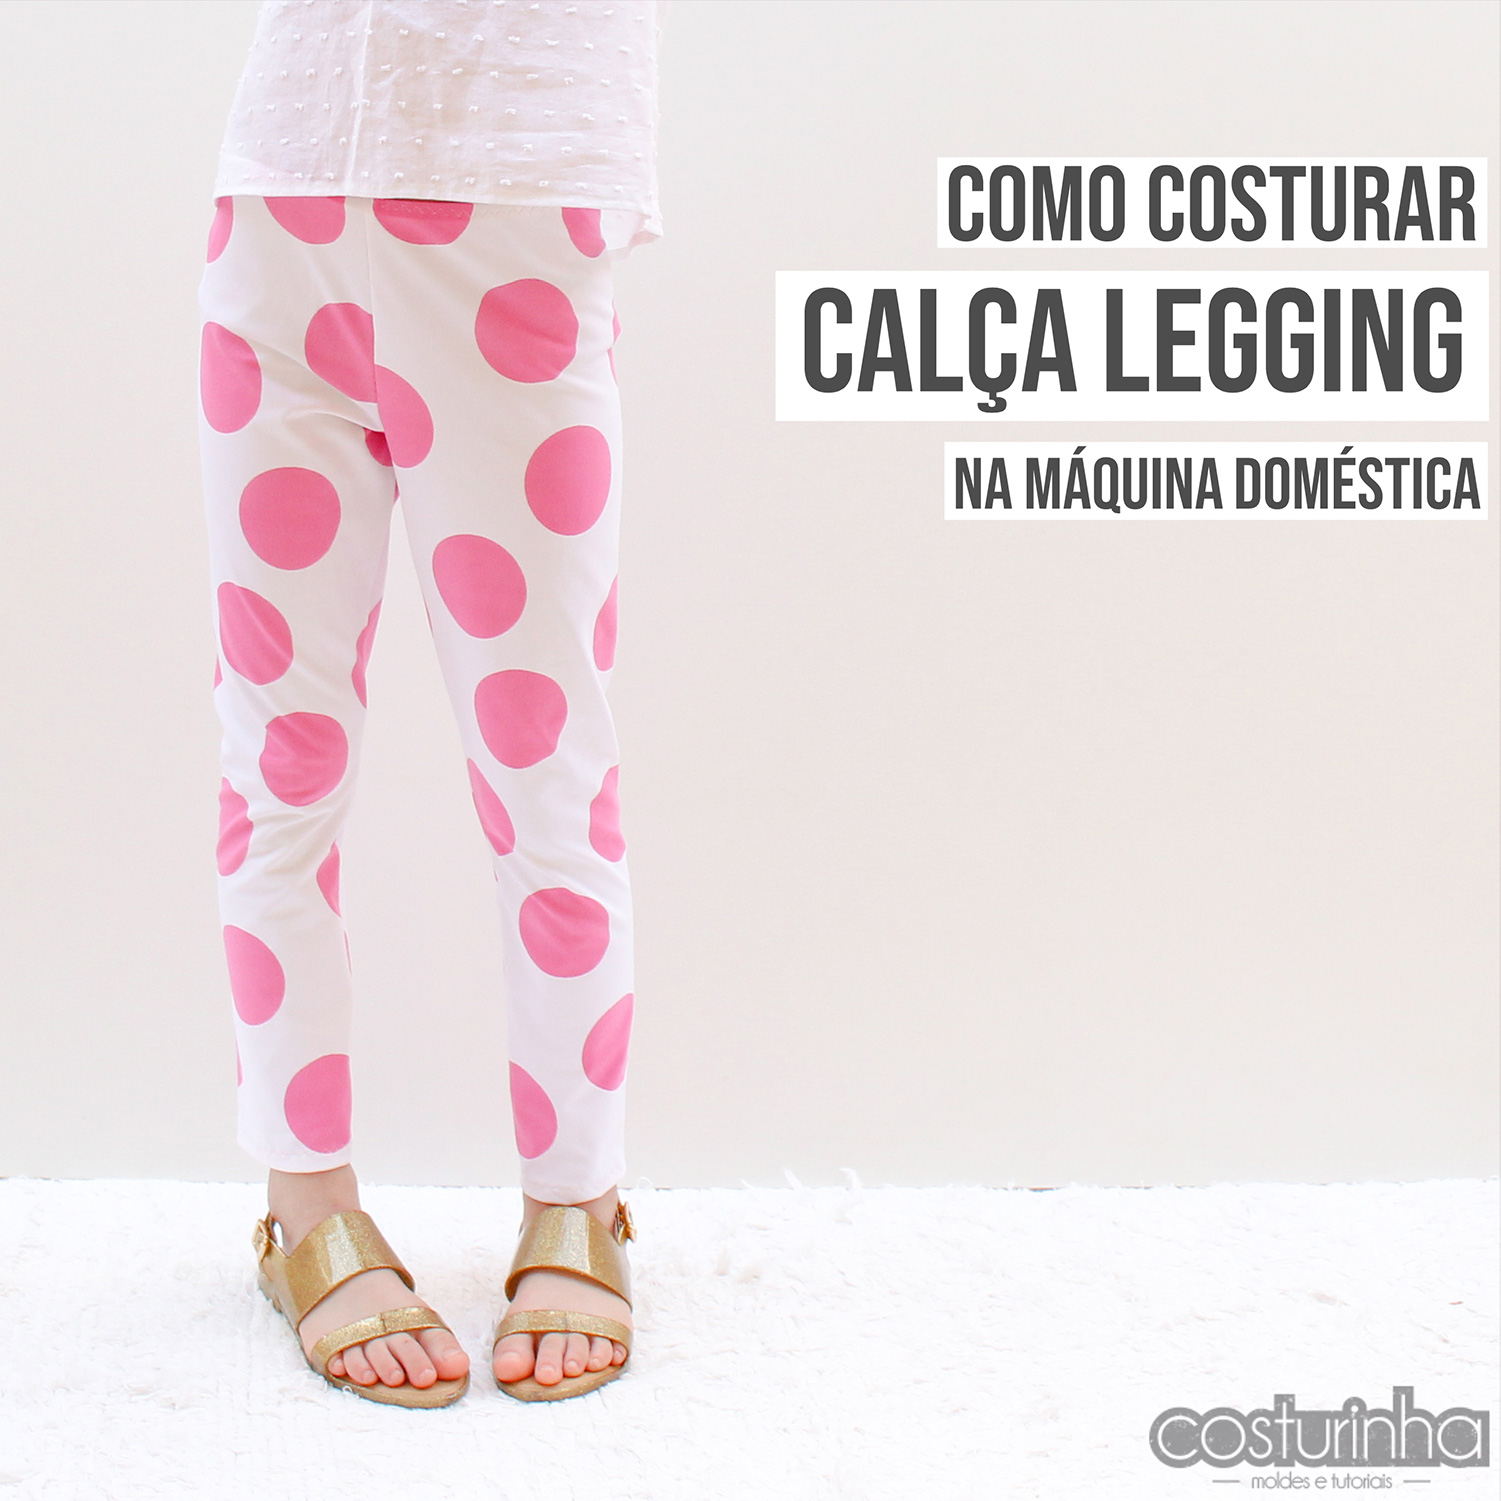 Molde grátis de calca legging PDF download